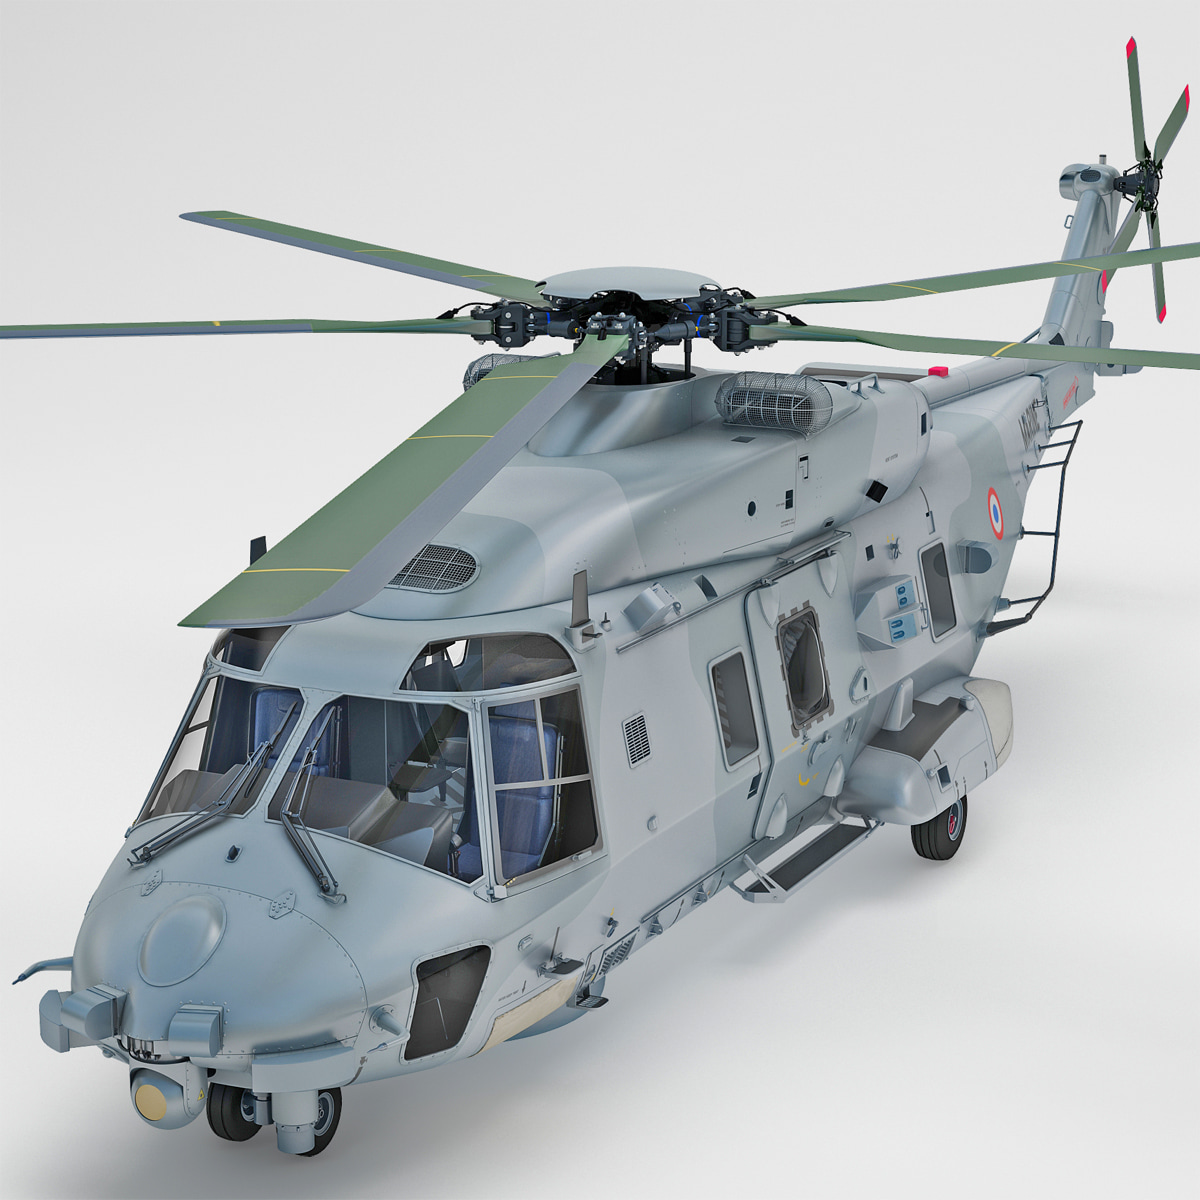 Elicottero Nh90 : D model nhindustries nh military helicopter